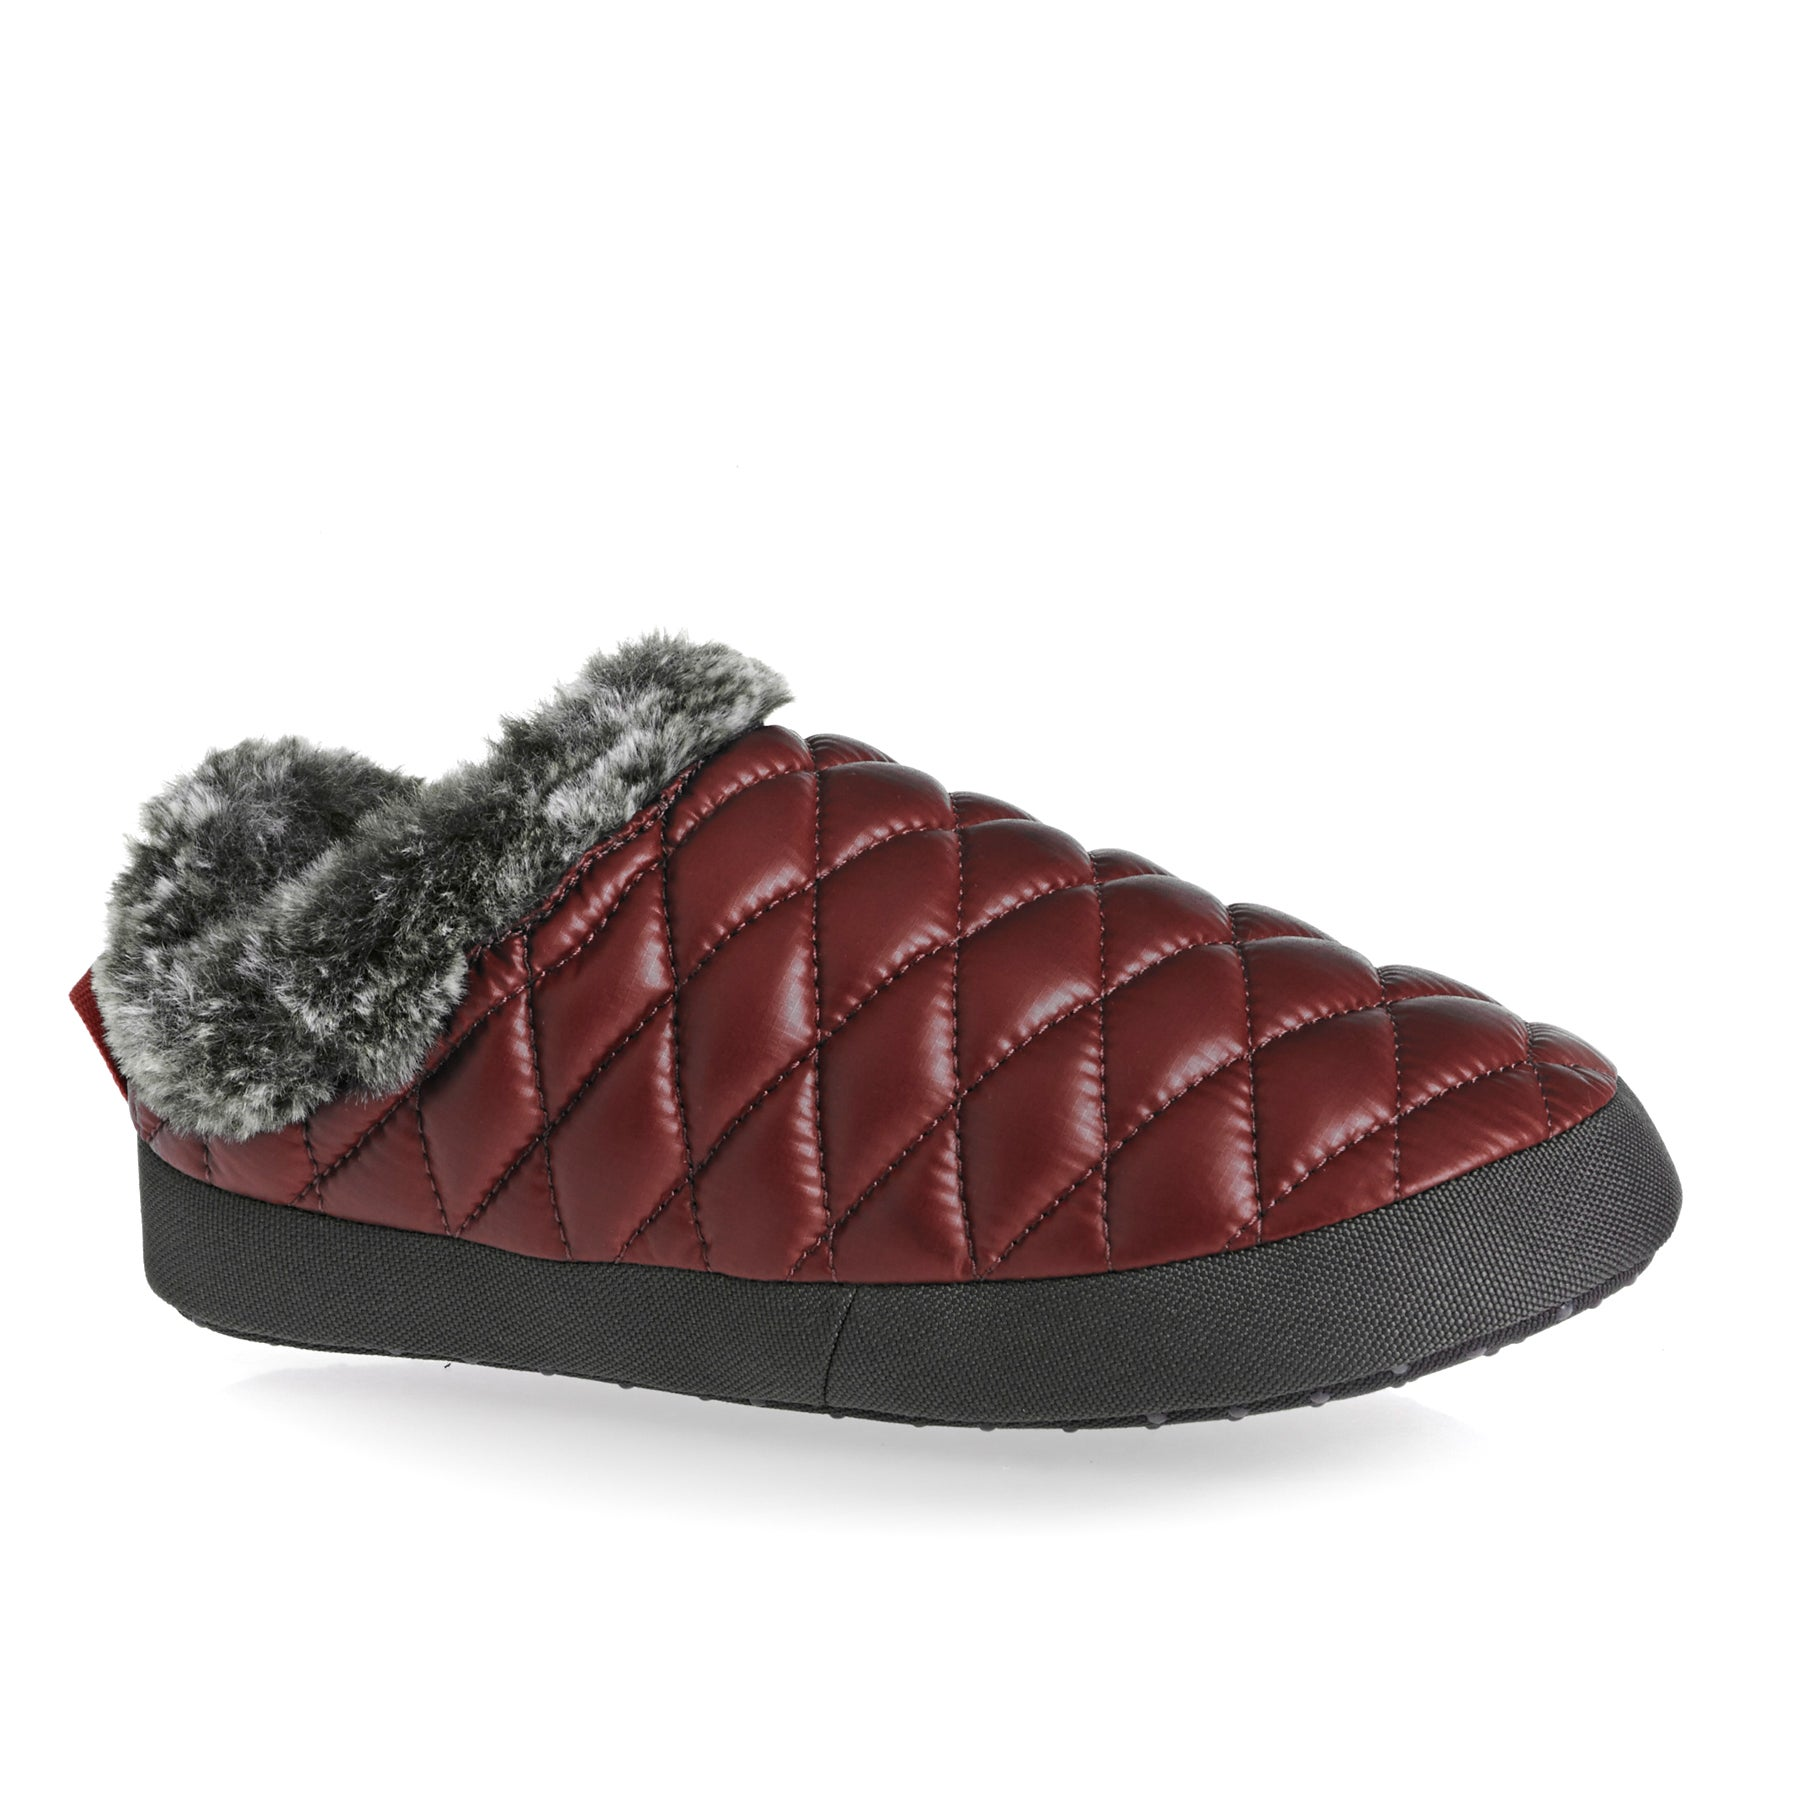 North Face Thermoball Tent Mule Faux Fur IV , Tofflor Dam - Shiny Barolo Red Iron Gate Grey